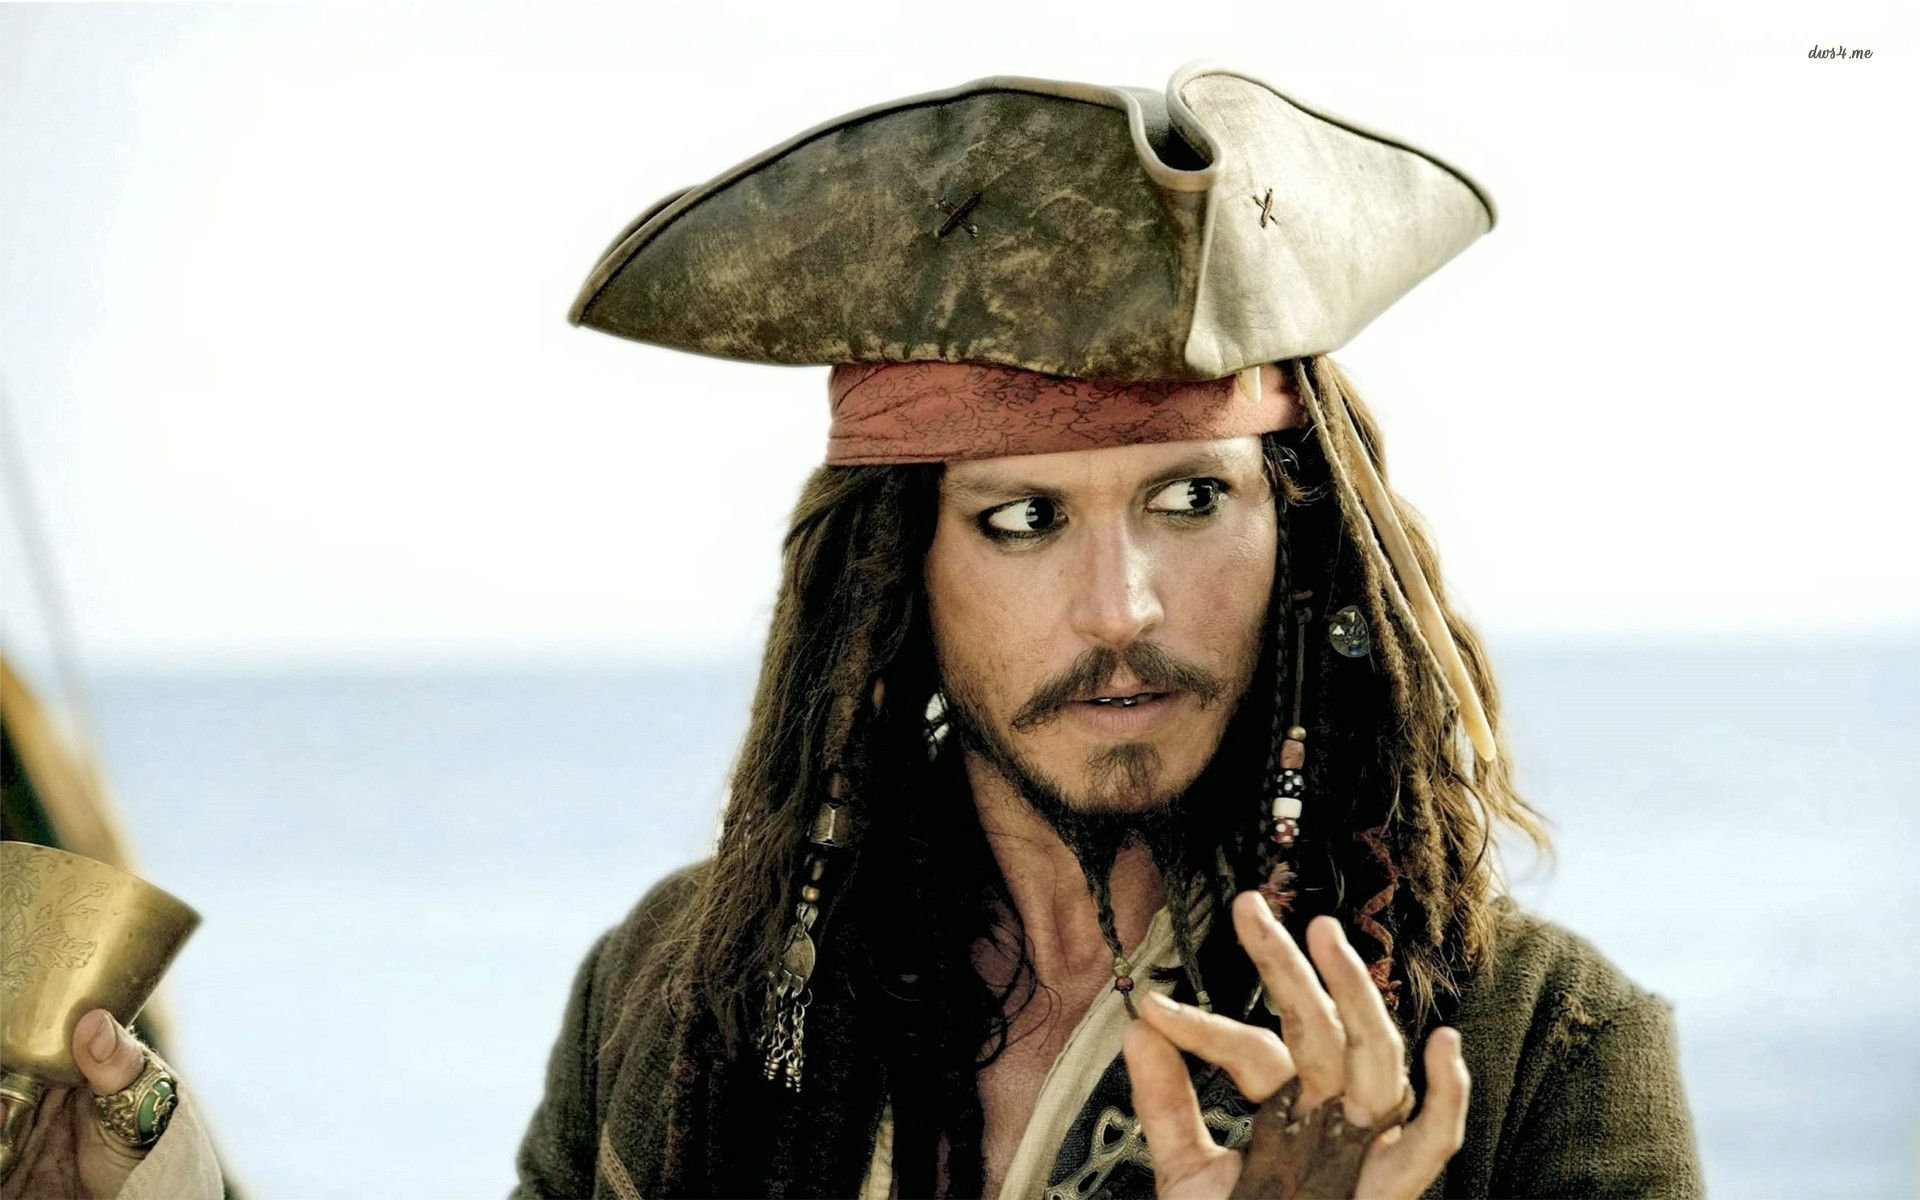 20142-captain-jack-sparrow-1920x1200-movie-wallpaper